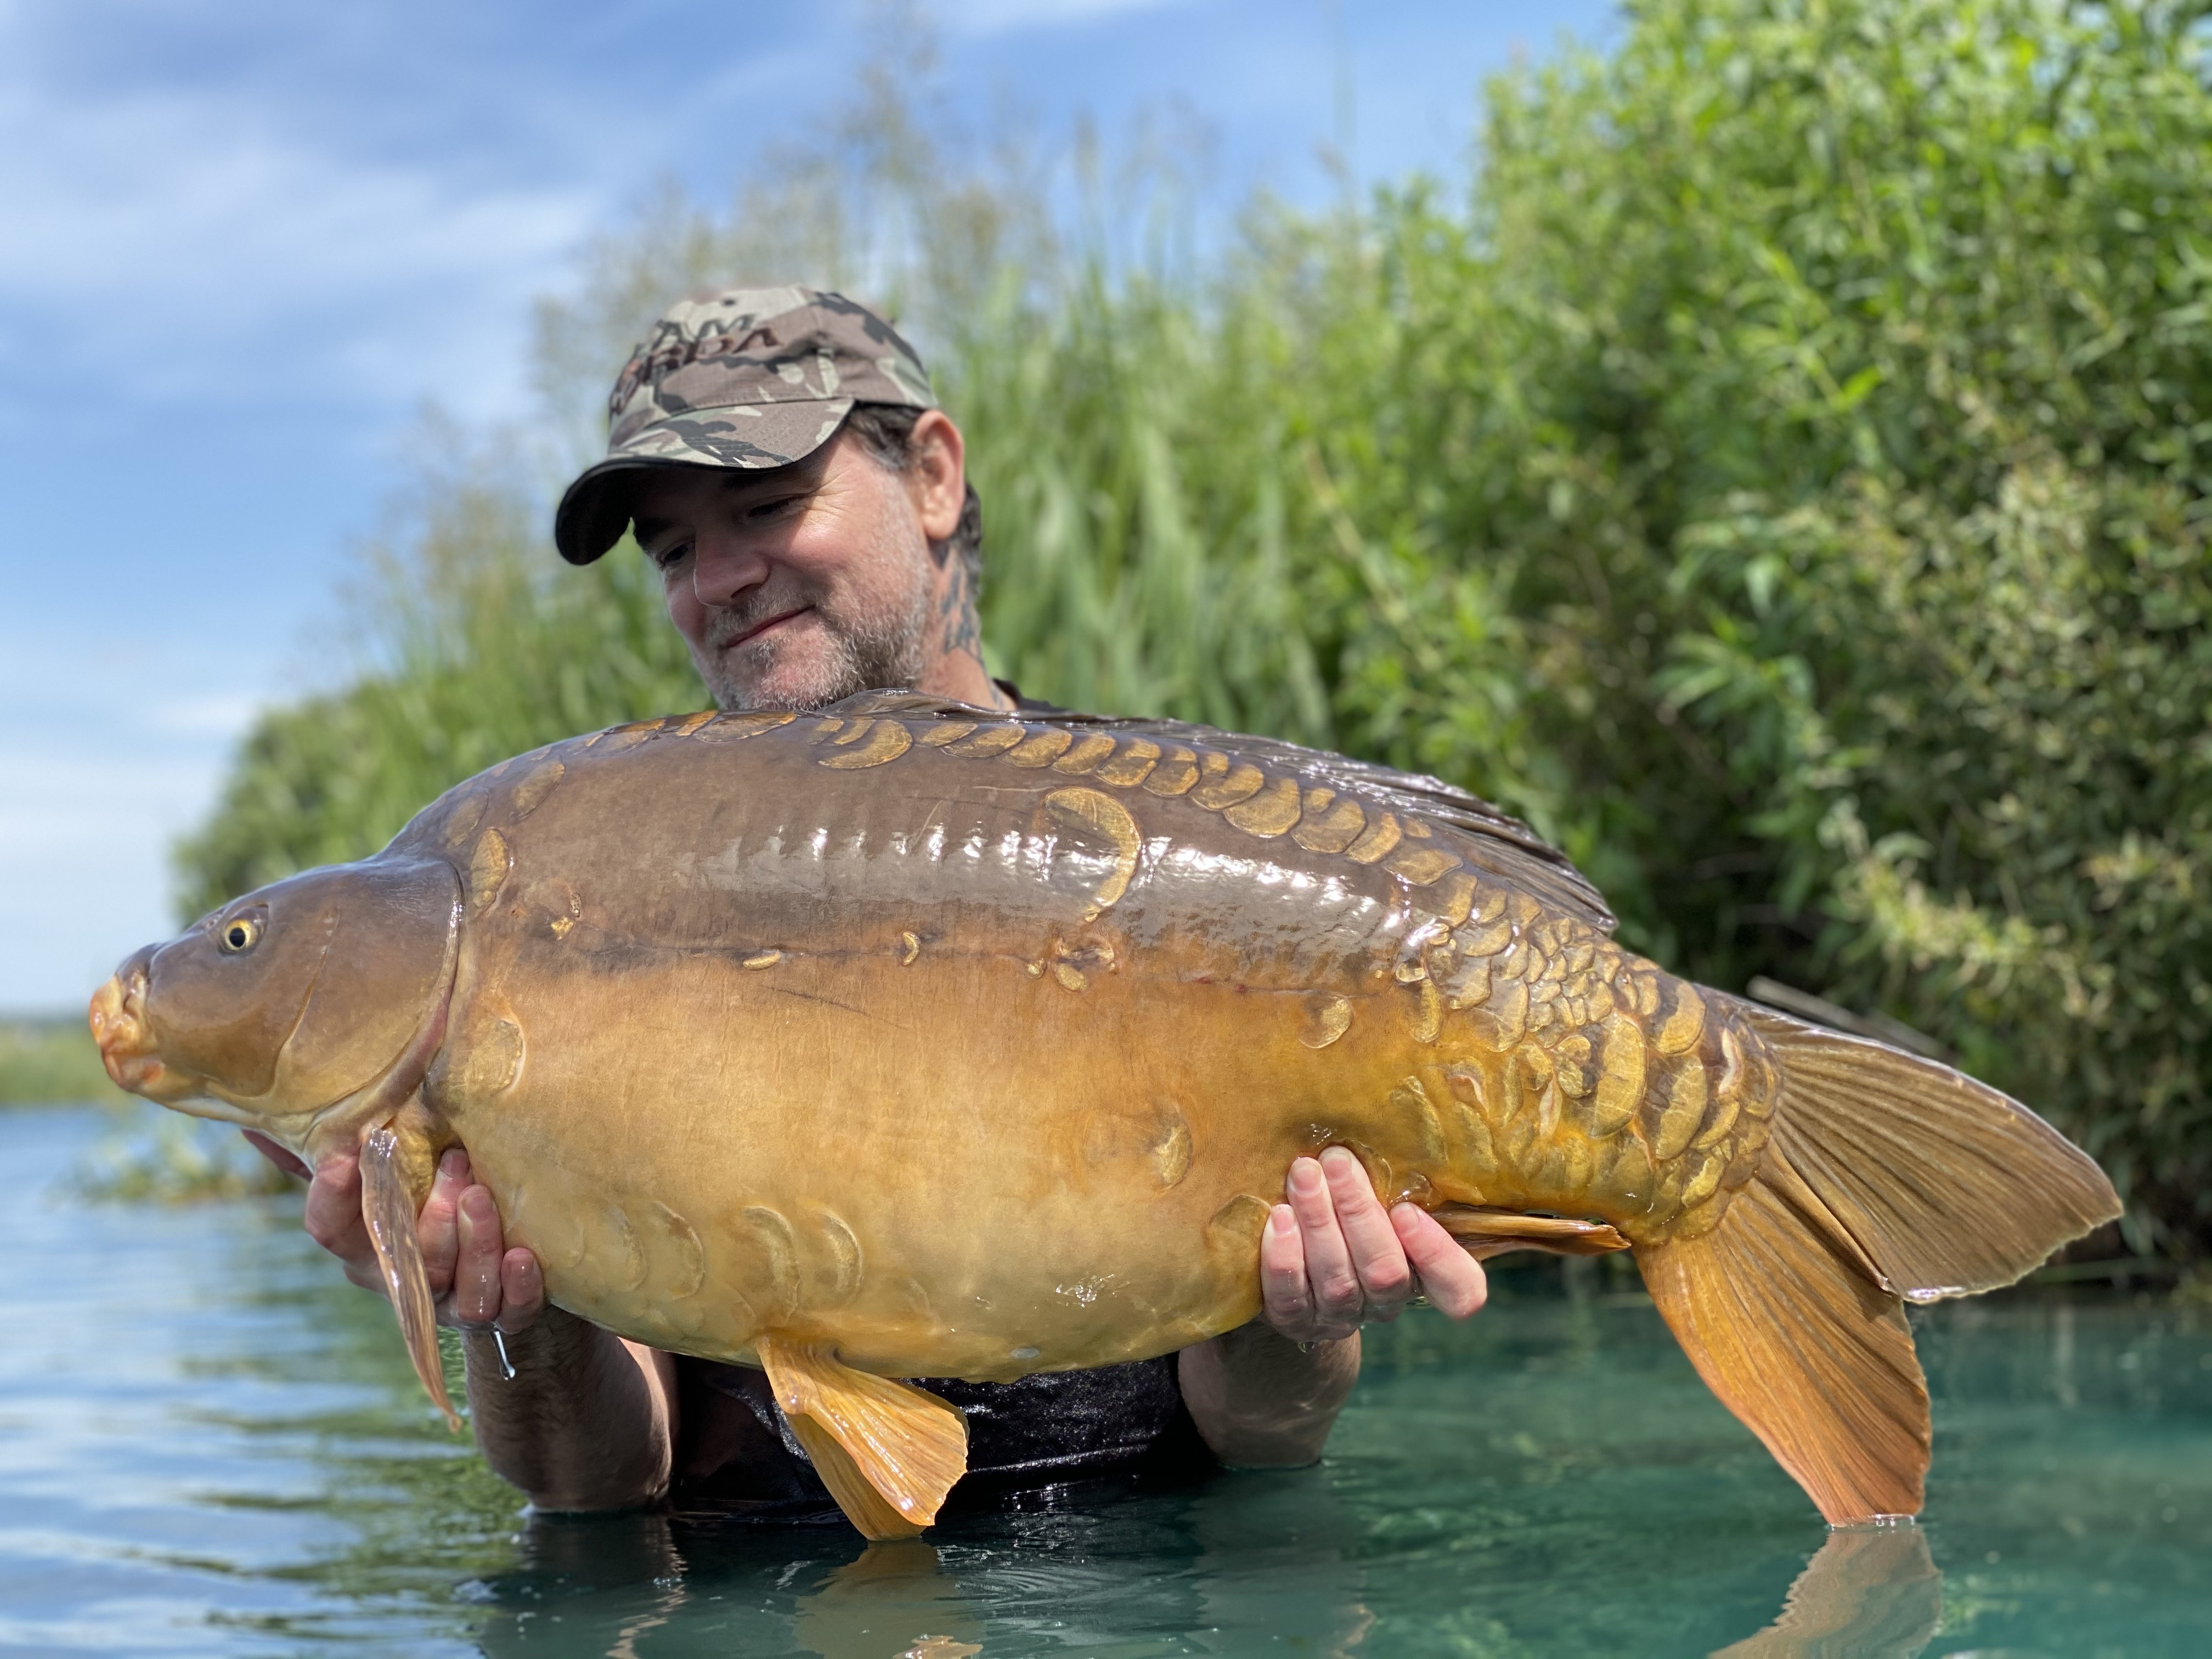 42lb 12oz 'Moonscale' caught on